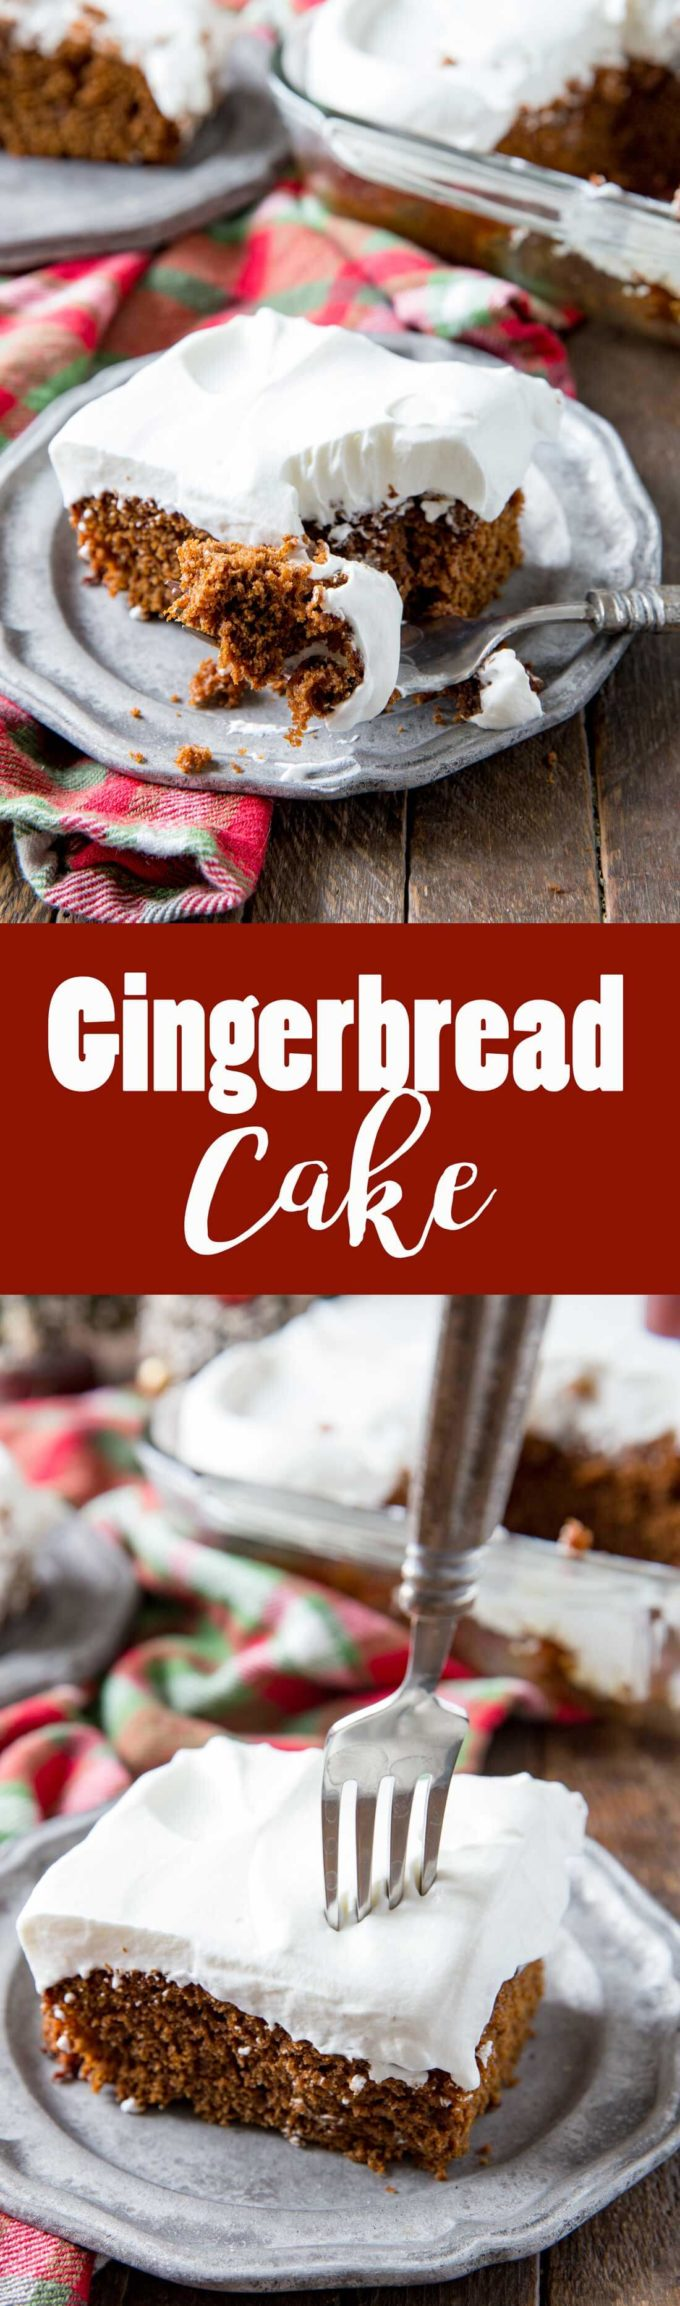 Rich, spicy, delicious gingerbread cake, perfect for celebrating the holidays